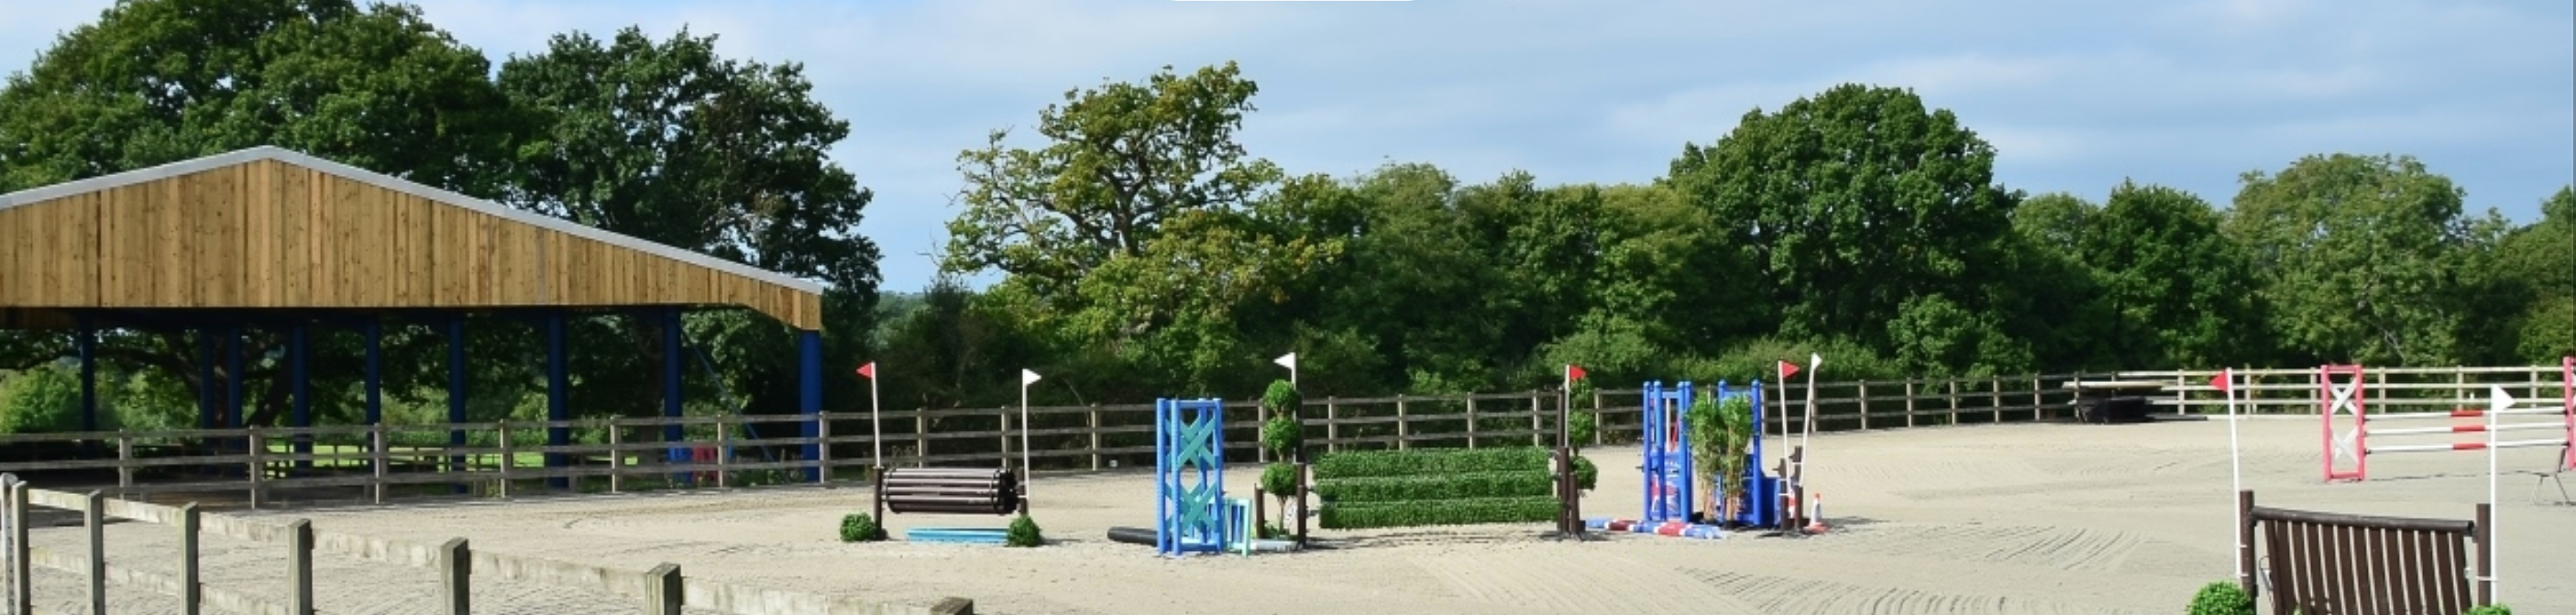 Apprentice - Equestrian School / 4* Event Yard - East Sussex